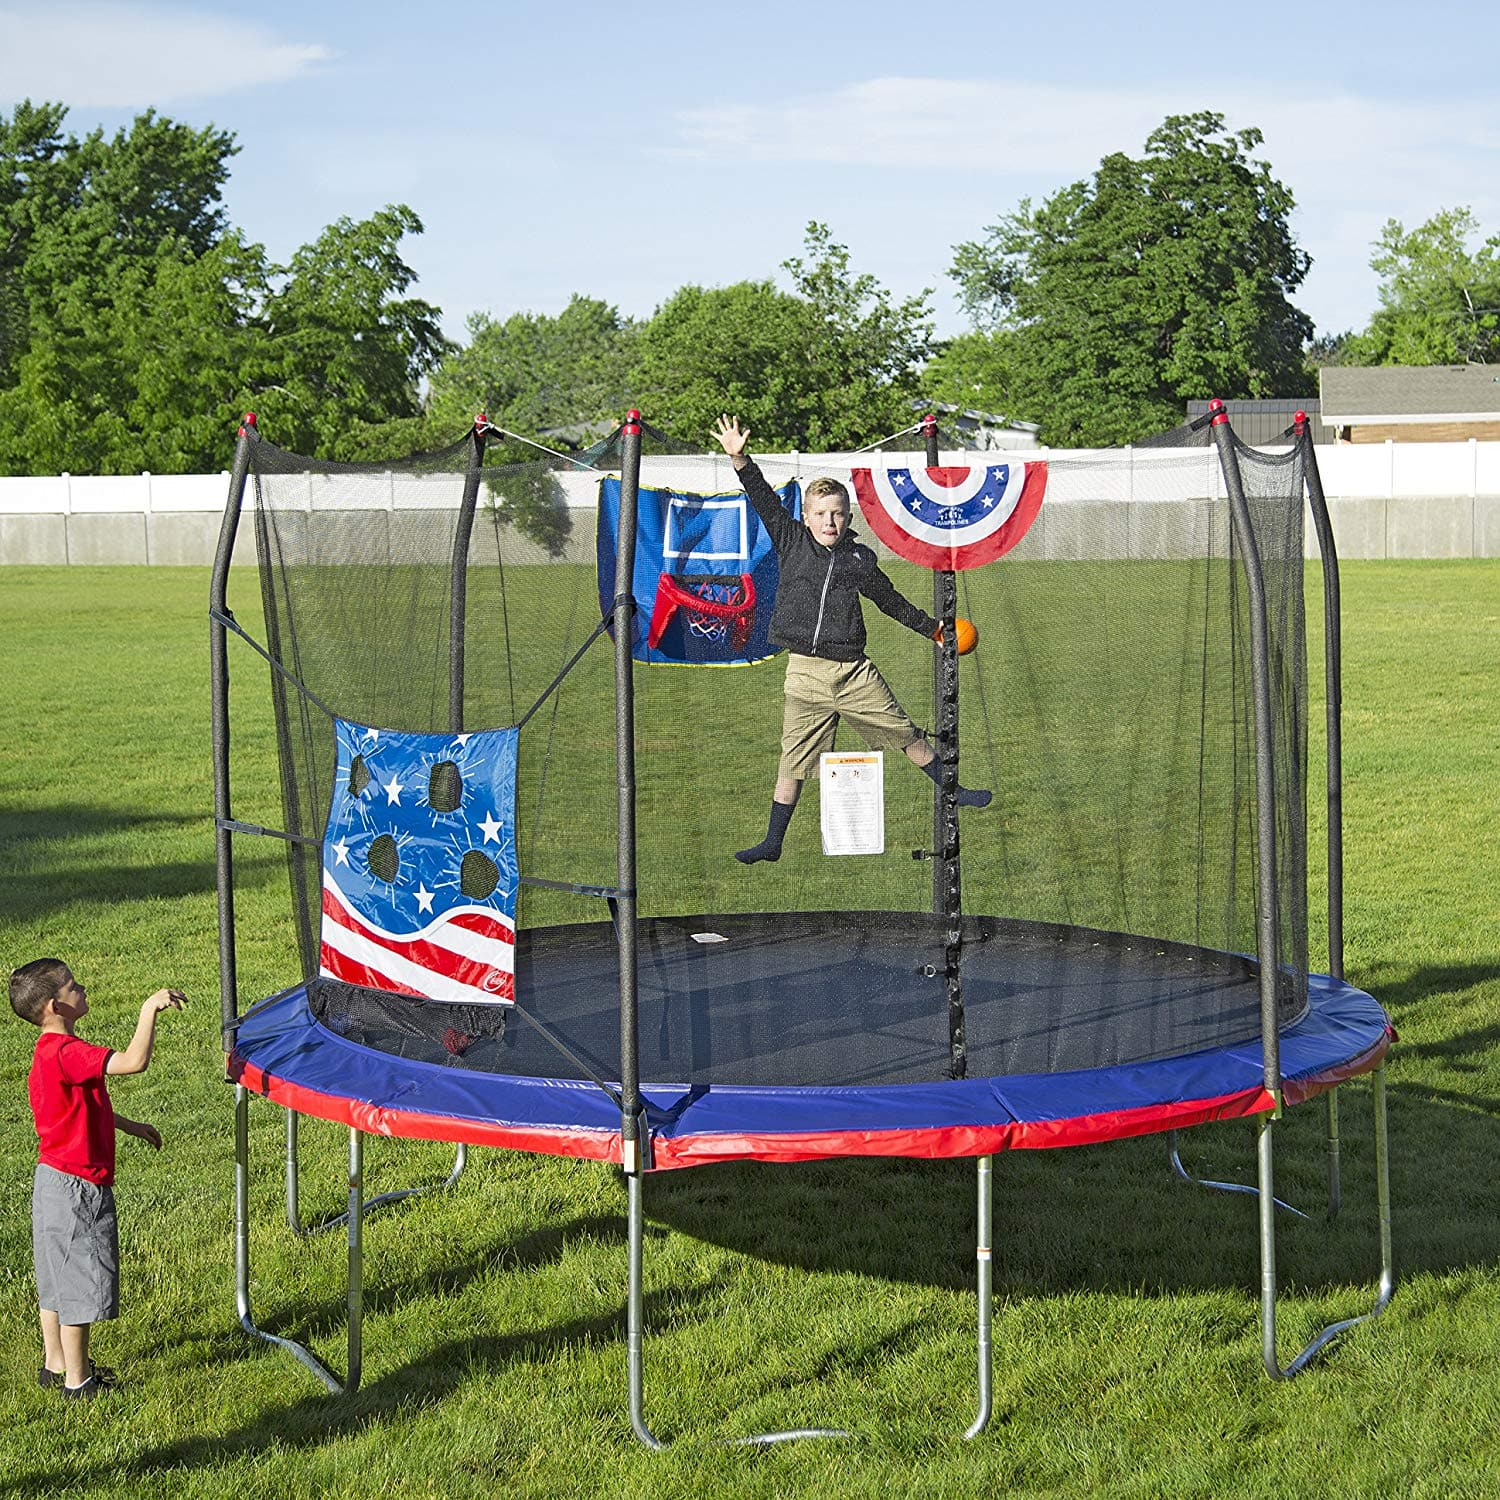 Skywalker Trampolines 12-Foot Basketball Trampoline with Enclosure Net  159.99 $159.99